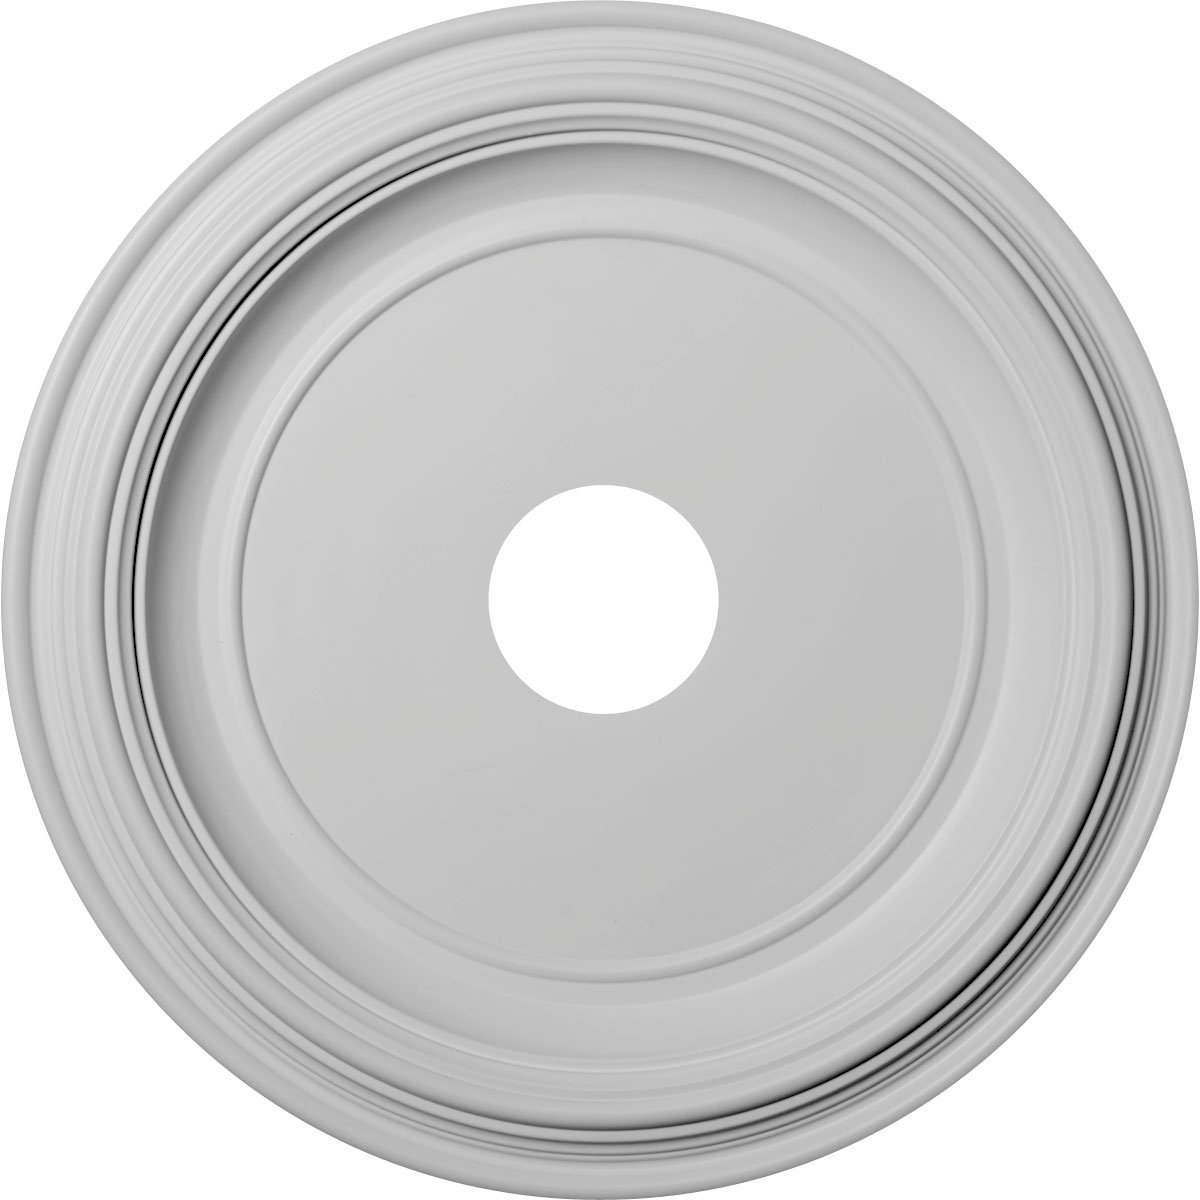 Ekena Millwork CMP19TR Traditional Thermoformed PVC Ceiling Medallion, 19'' OD x 3 1/2'' ID x 1 1/2'' P (Fits Canopies up to 11 1/2''), White